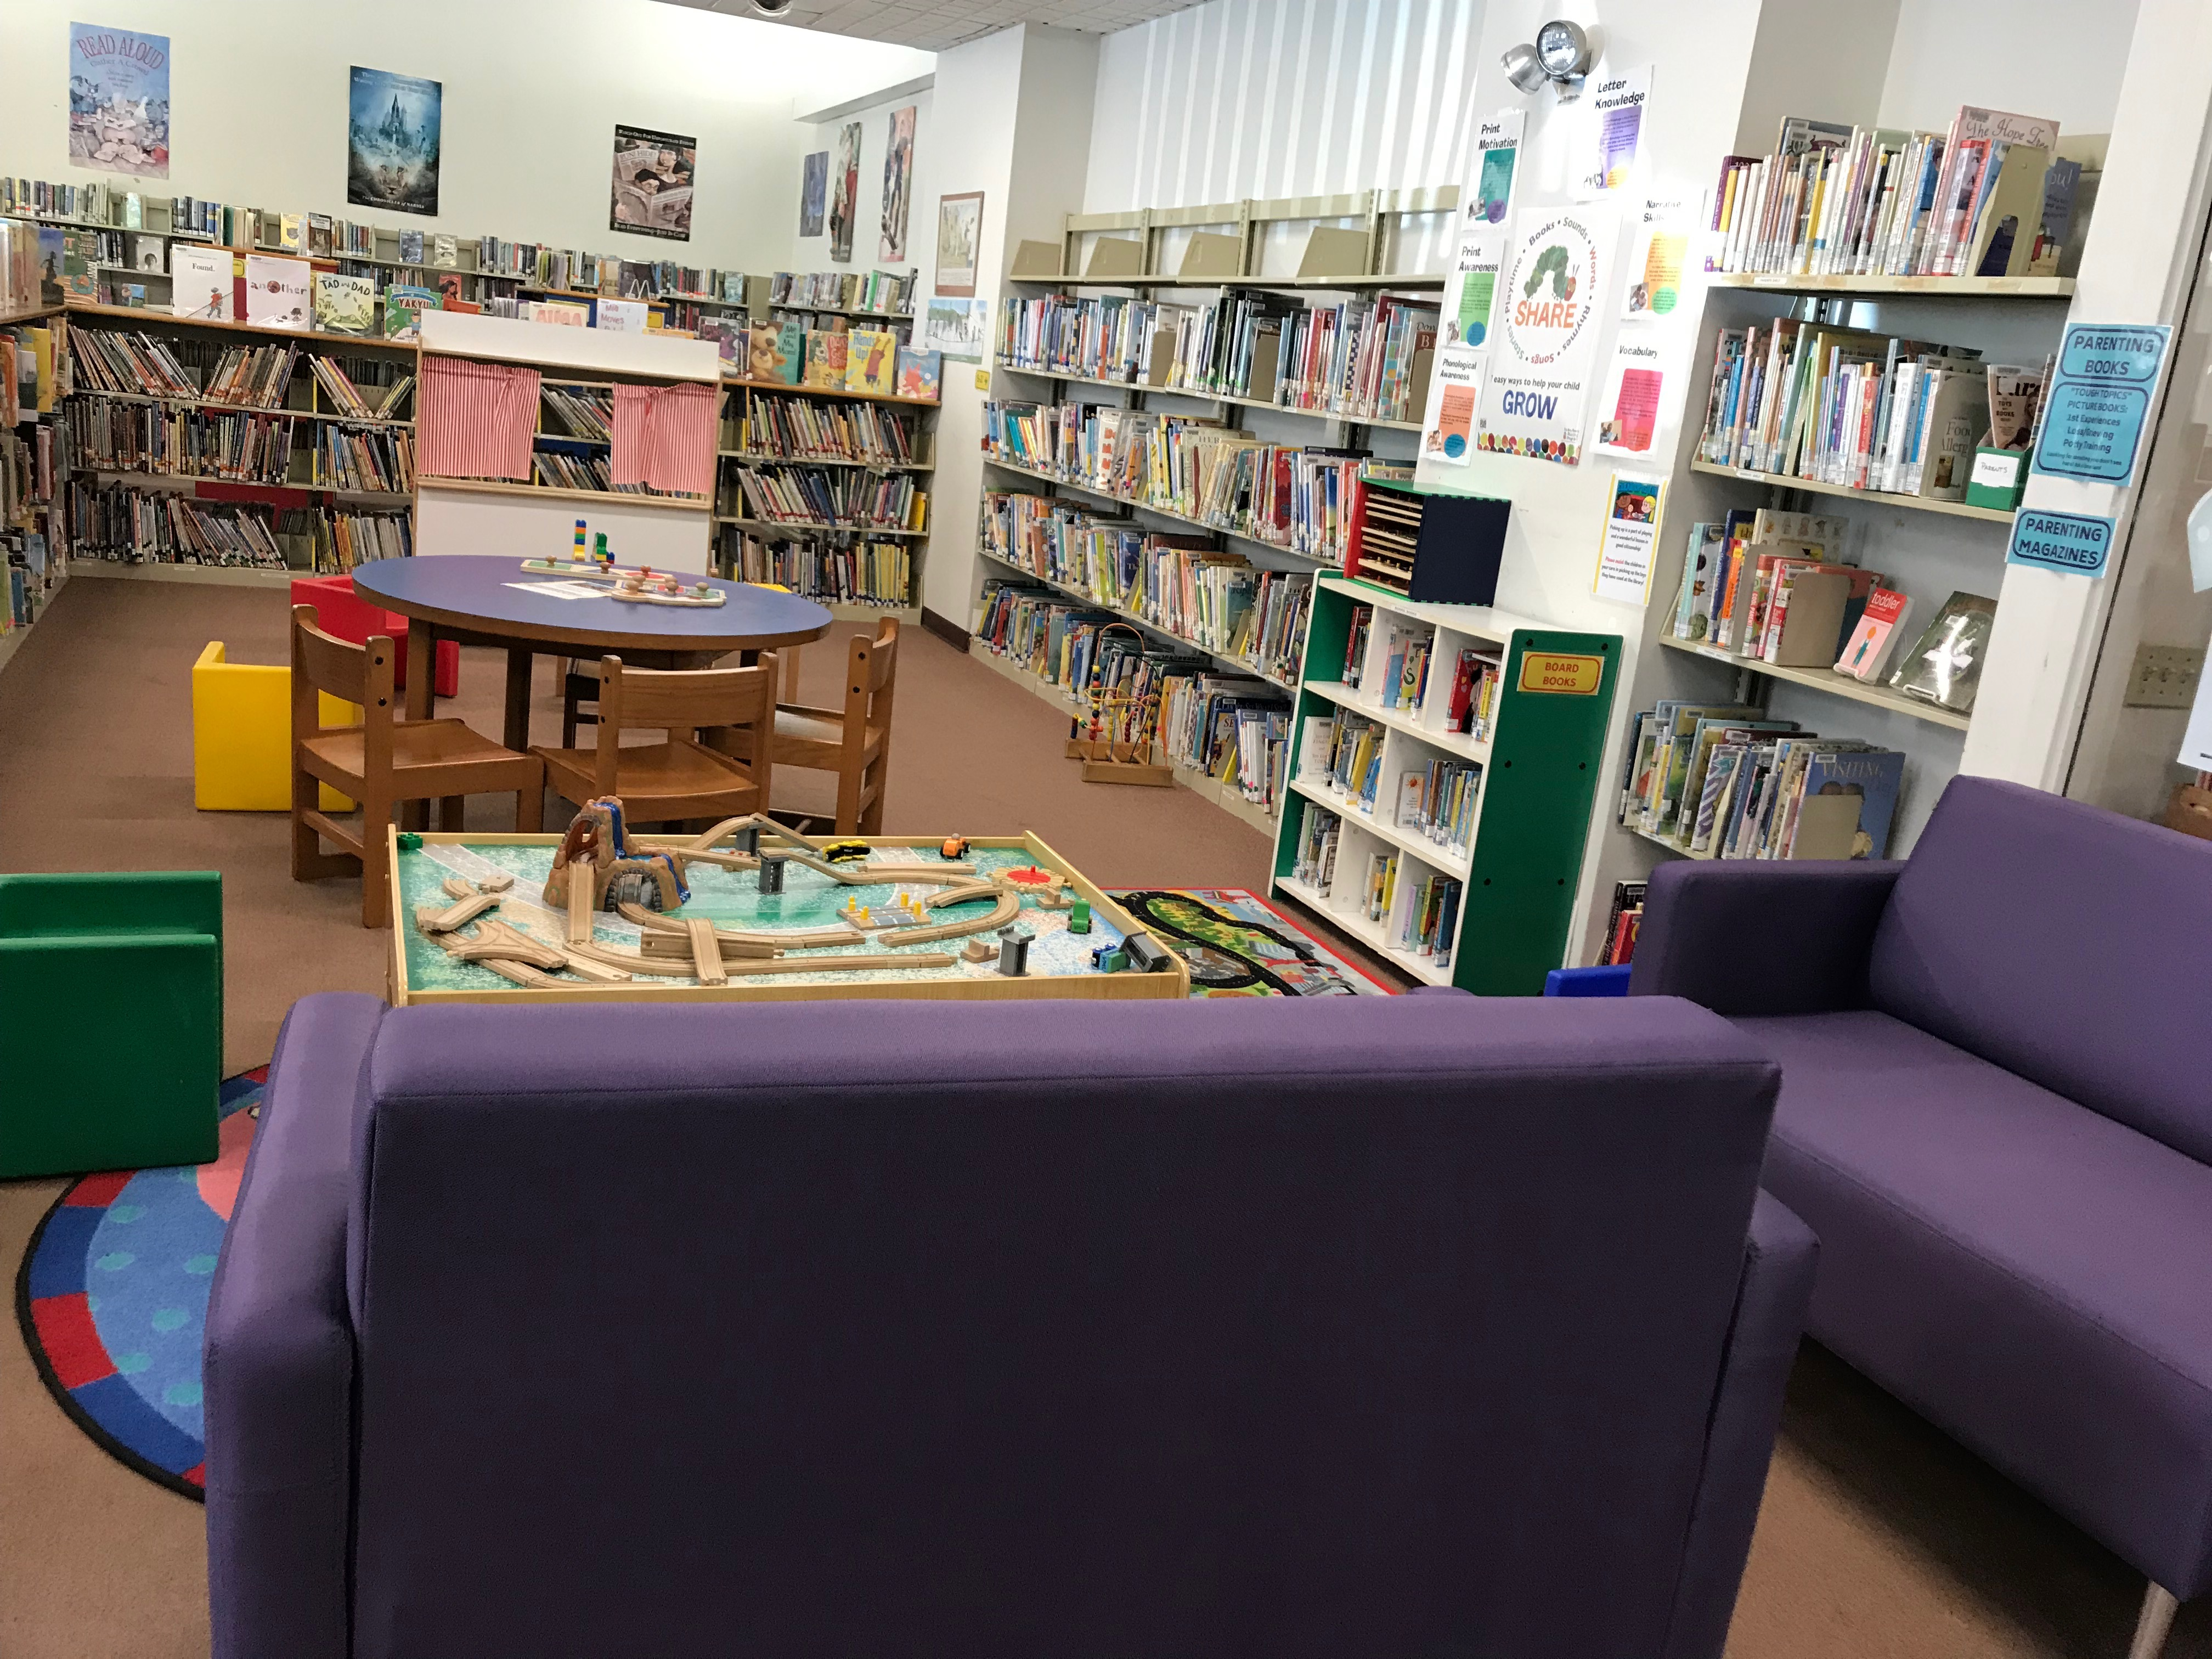 Image of the early literacy area of the children's room: purple couches, puppet theatre, train table, and many books.